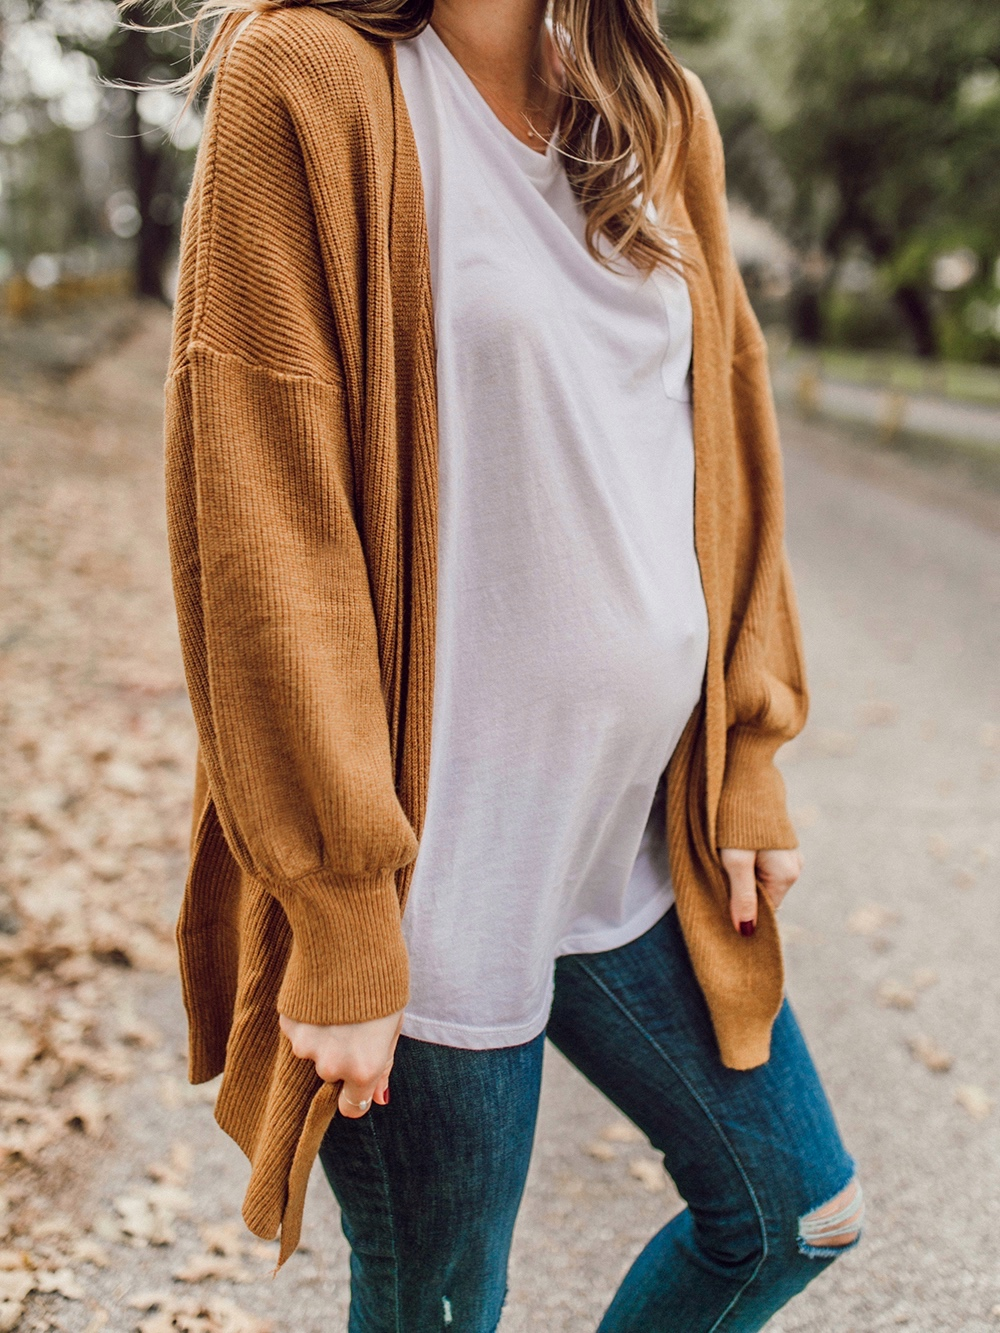 livvyland-blog-olivia-watson-austin-texas-fashion-lifestyle-blogger-mustard-cardigan-outfit-madewell-regan-boots-cyber-monday-nordstrom-sale-3